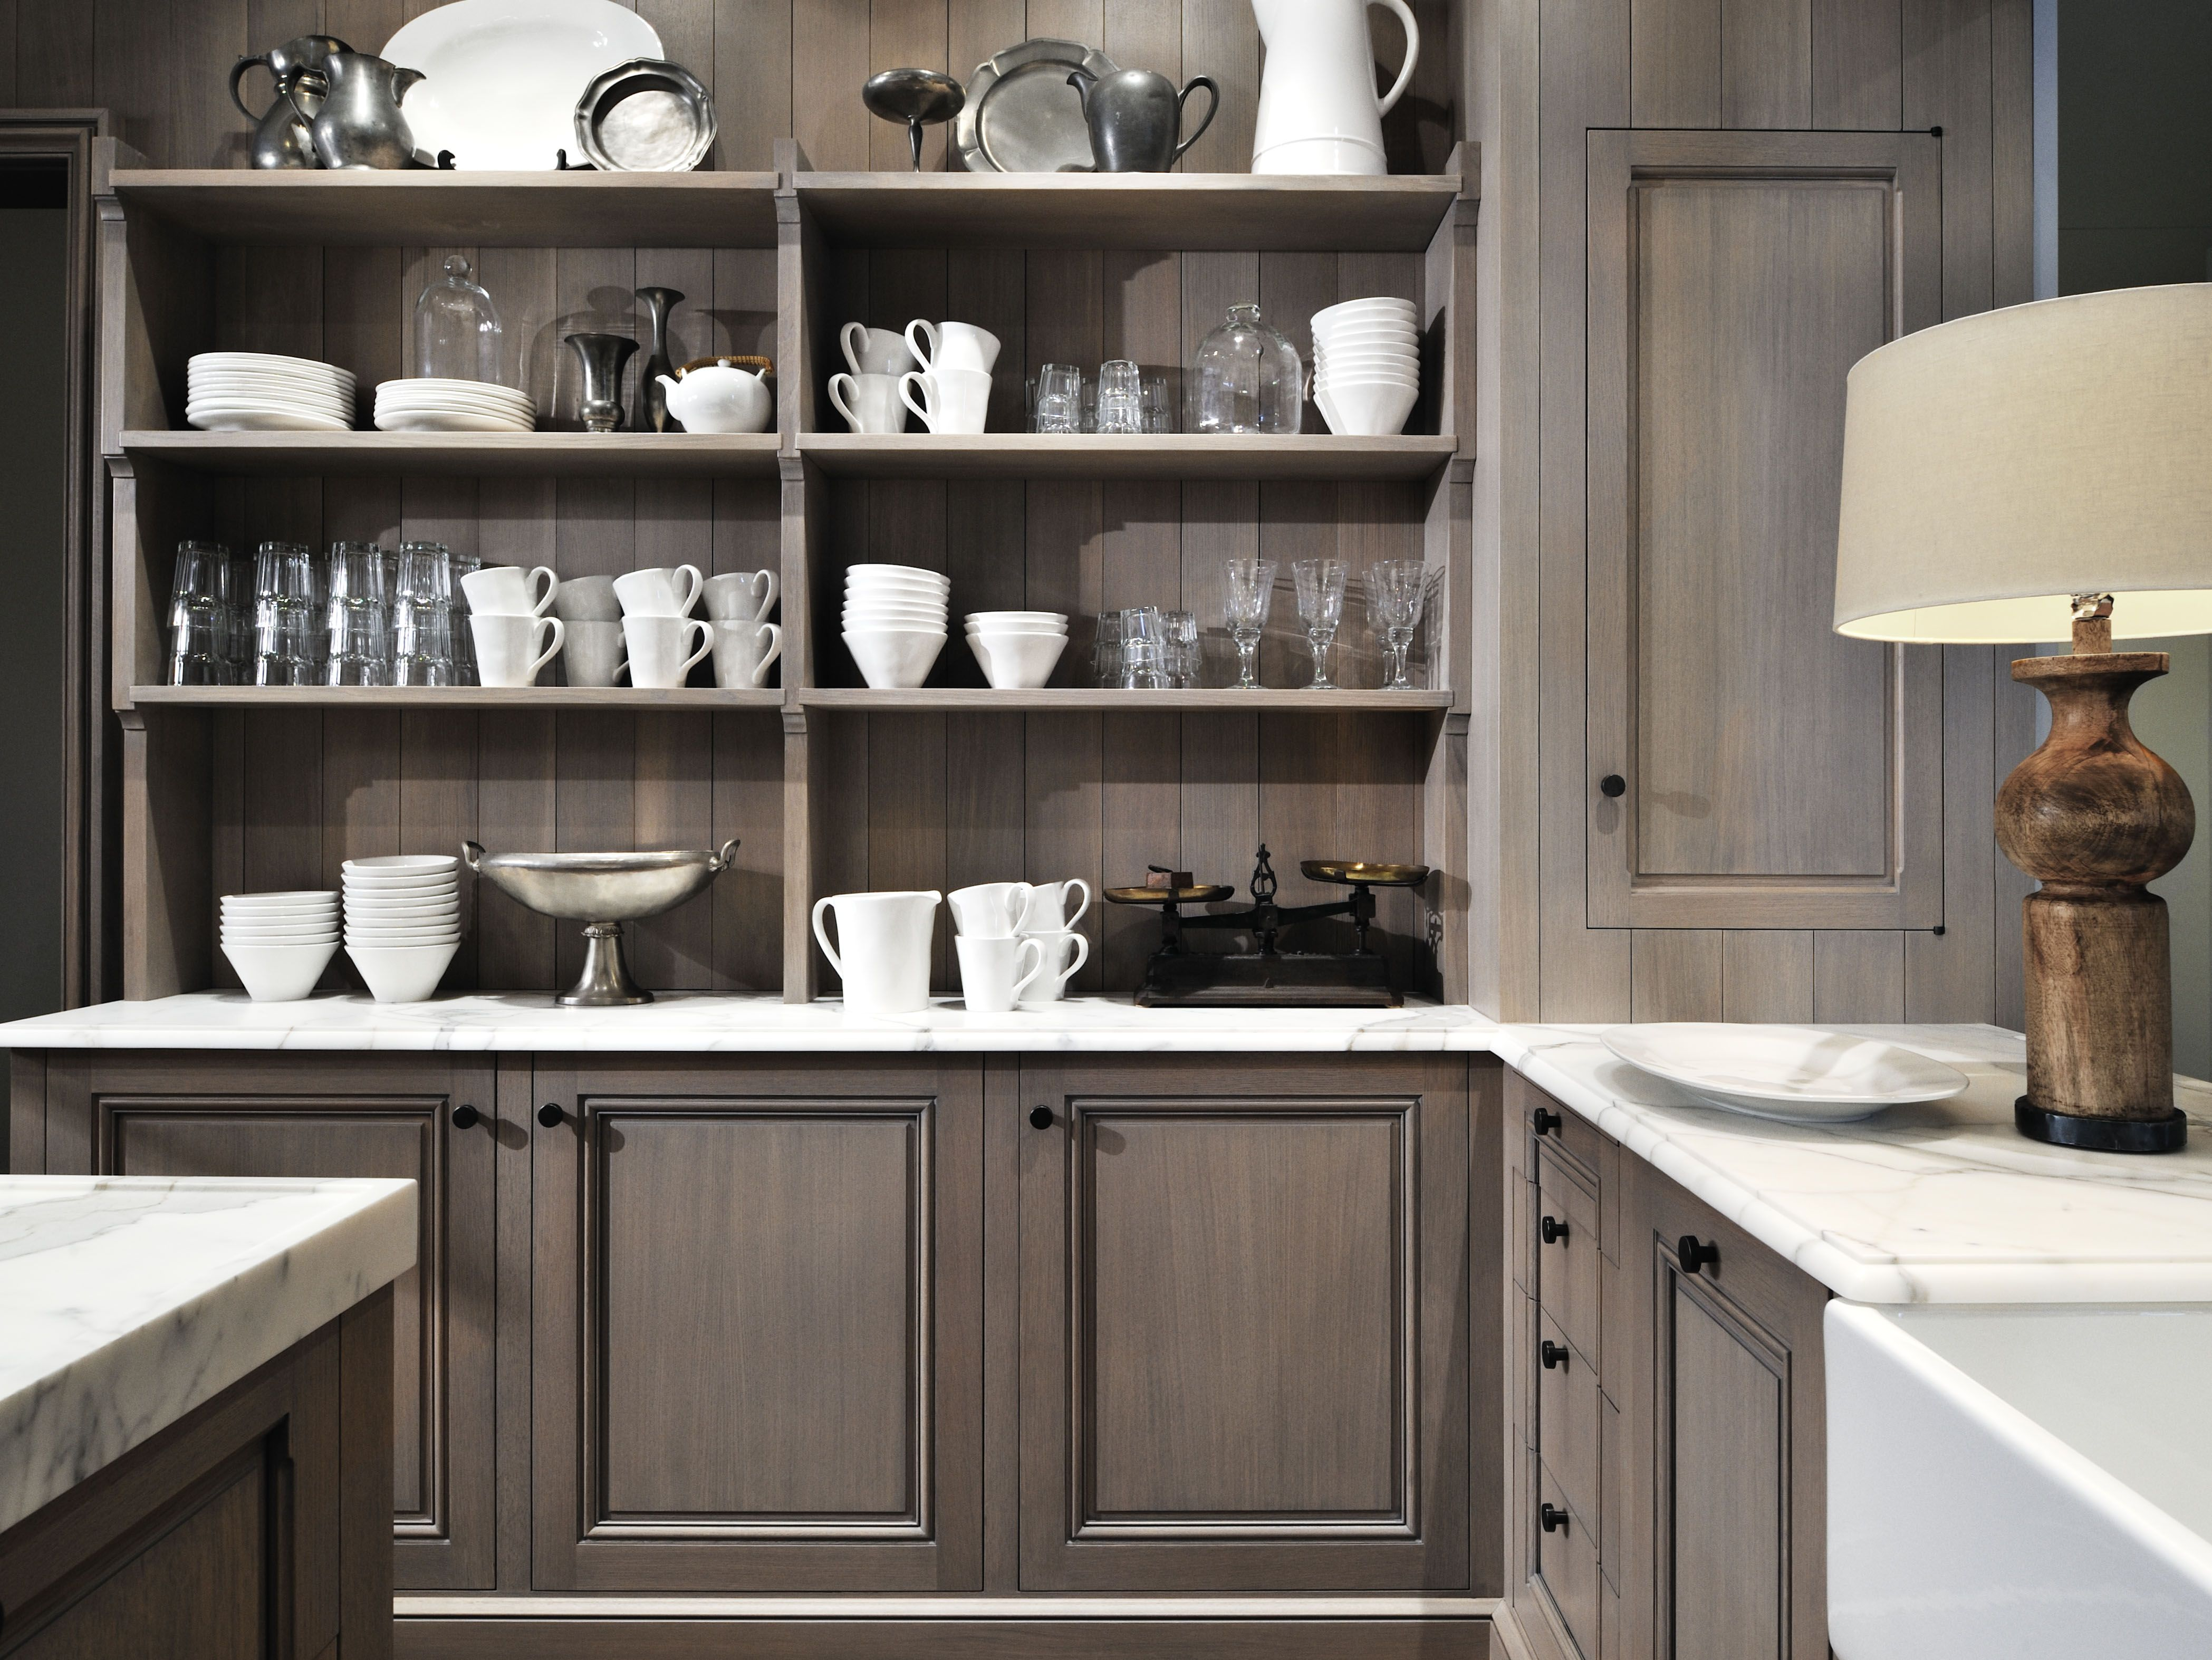 Pin By Rona Norelius On Mmmm Kitchens Stained Kitchen Cabinets Light Grey Kitchen Cabinets Kitchen Cabinet Design